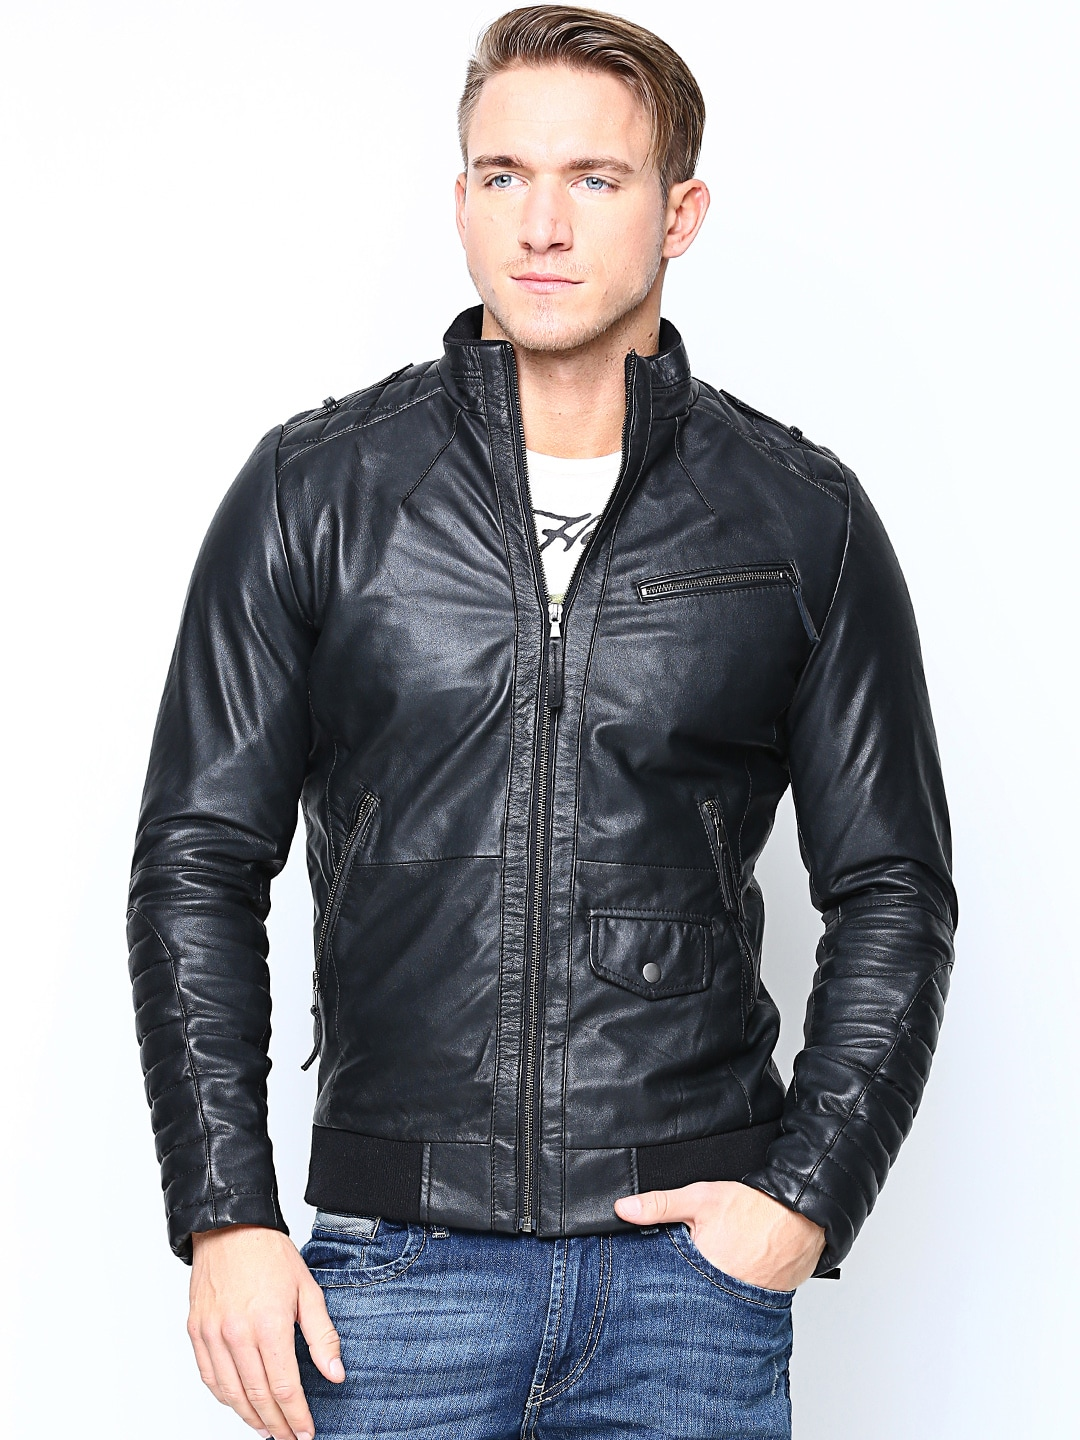 BARESKIN Men Black Leather Jacket